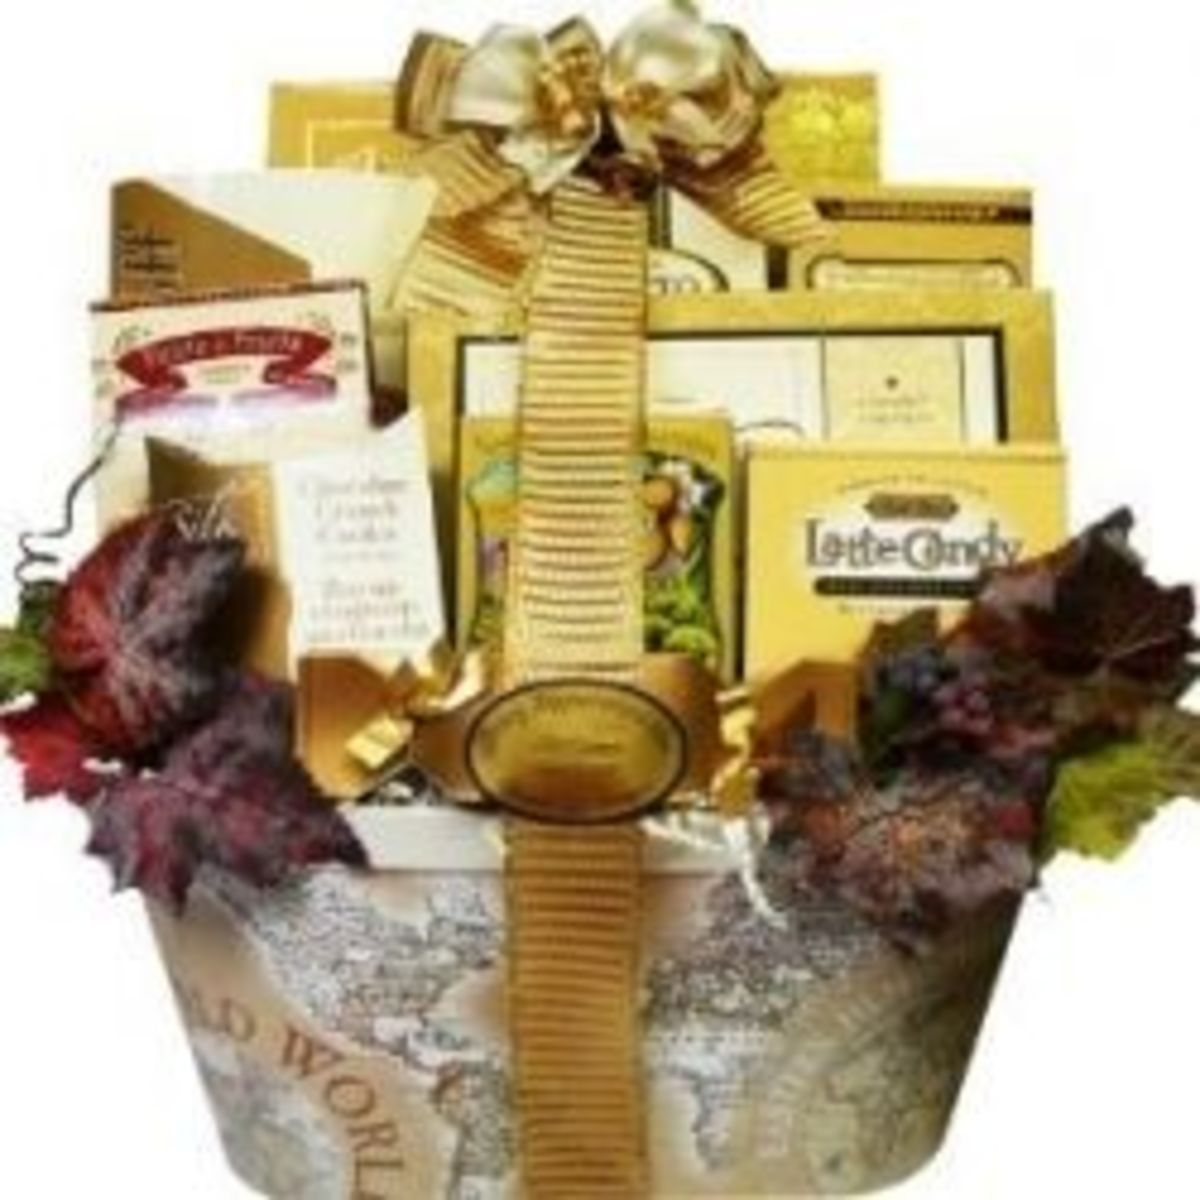 Gift Basket For 25th Wedding Anniversary : ... gifts are tied with pretty ribbons and it includes a personalized gift